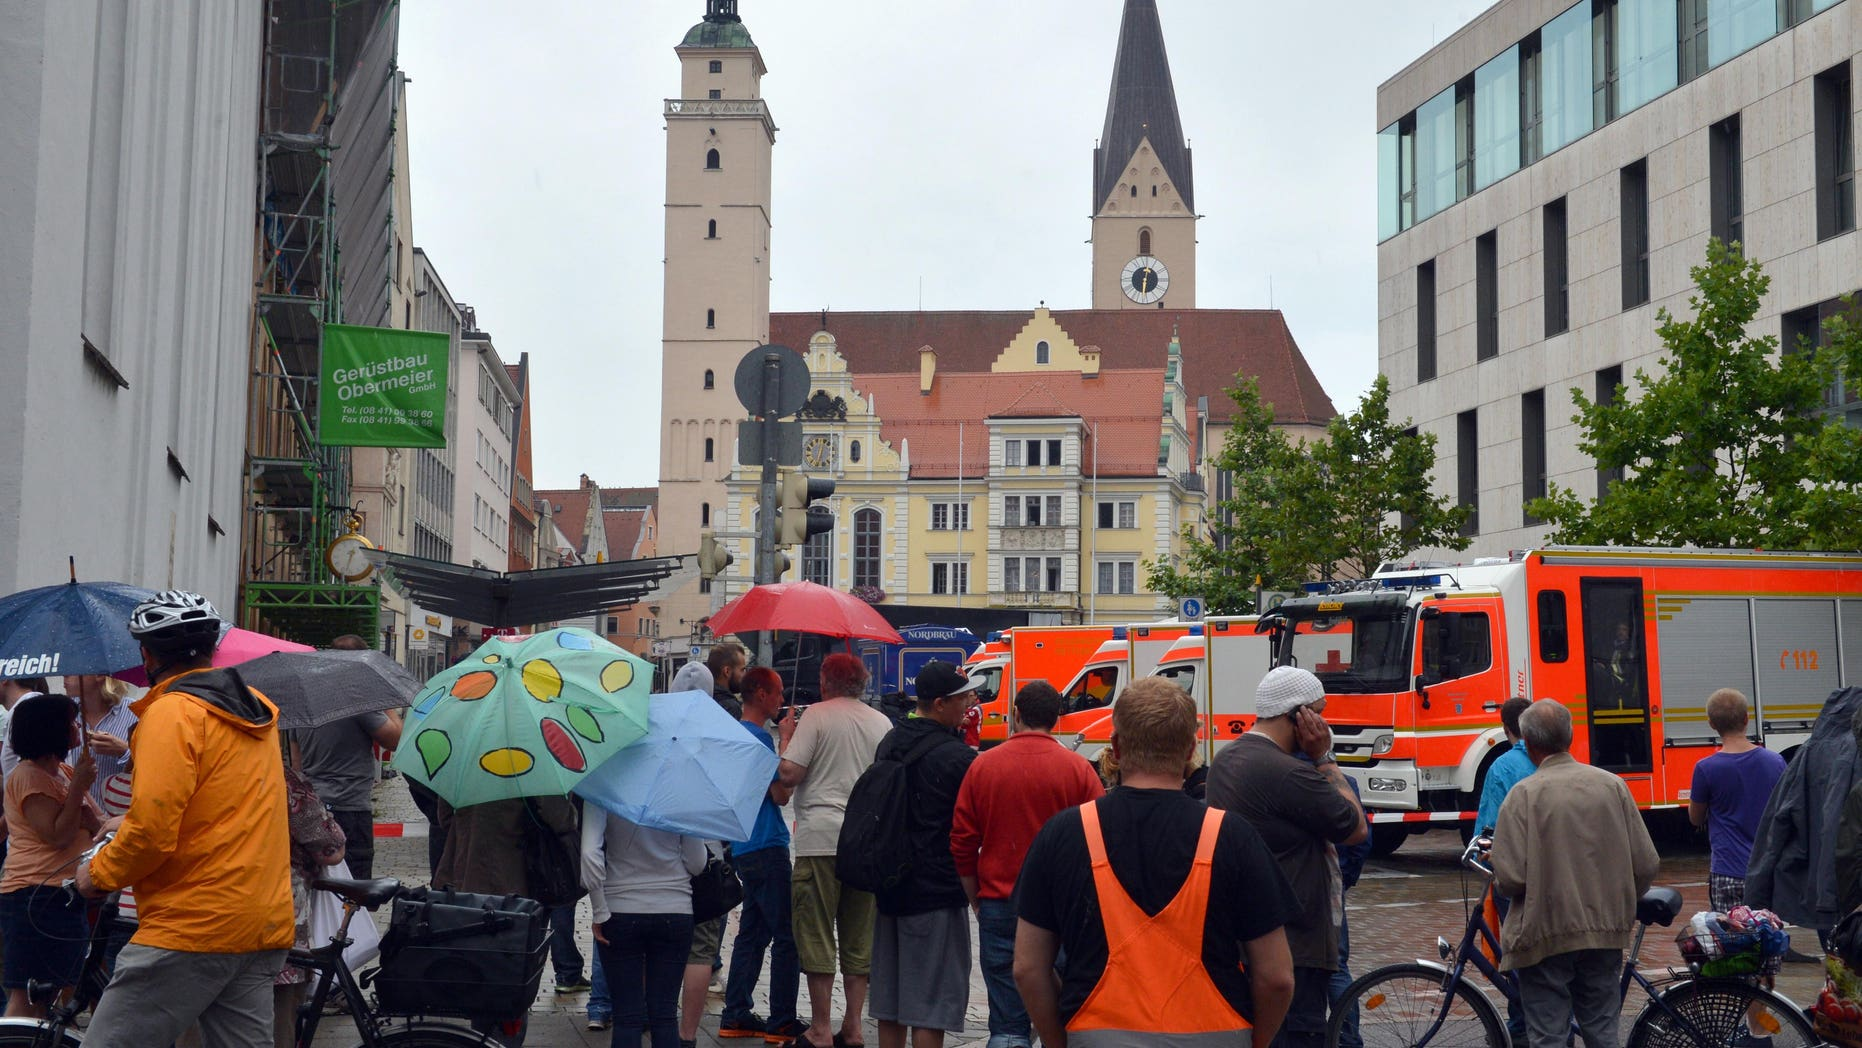 Aug. 19, 2013 - Onlookers stand in front of city hall in Ingolstadt, Germany, after a man took several hostages. Police spokesman Guenther Beck said it wasn't clear what weapons the man might have or what he wants.